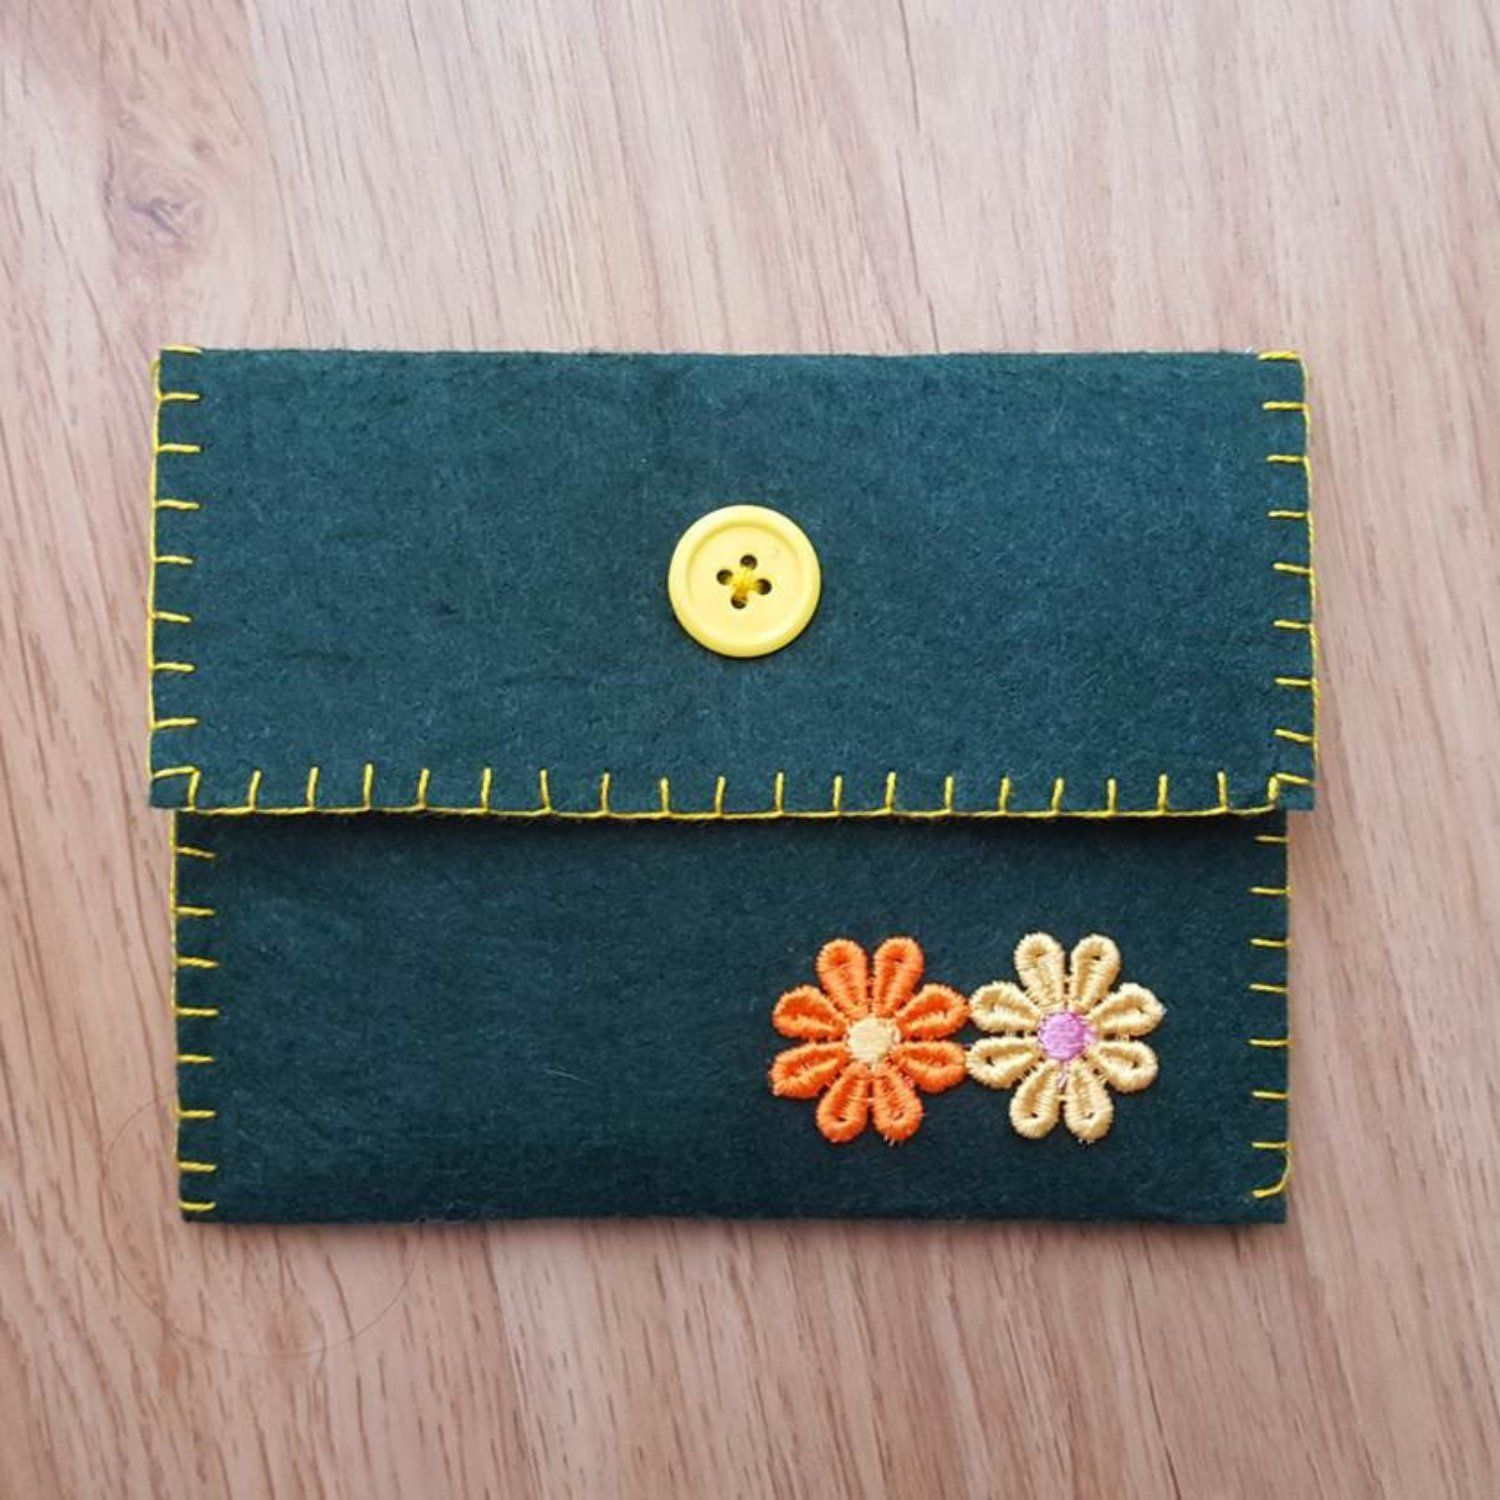 Felt purse with button, dark green with orange and yellow flowers ...